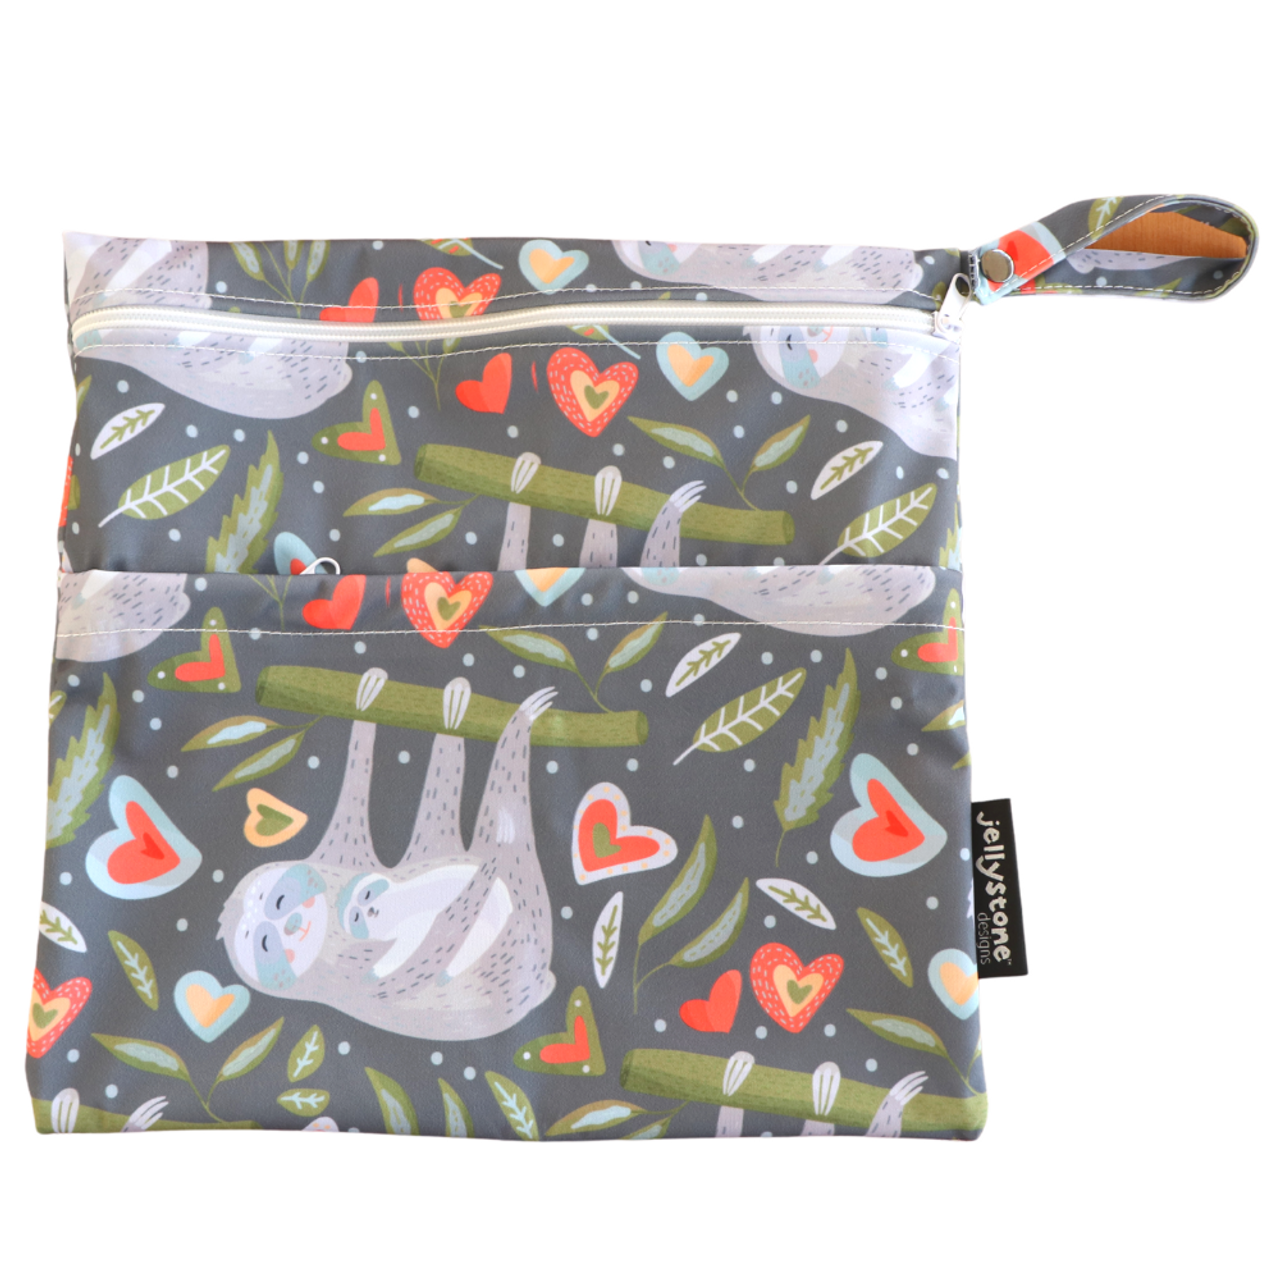 Jellystone Wet Bag at Baby Barn Discounts